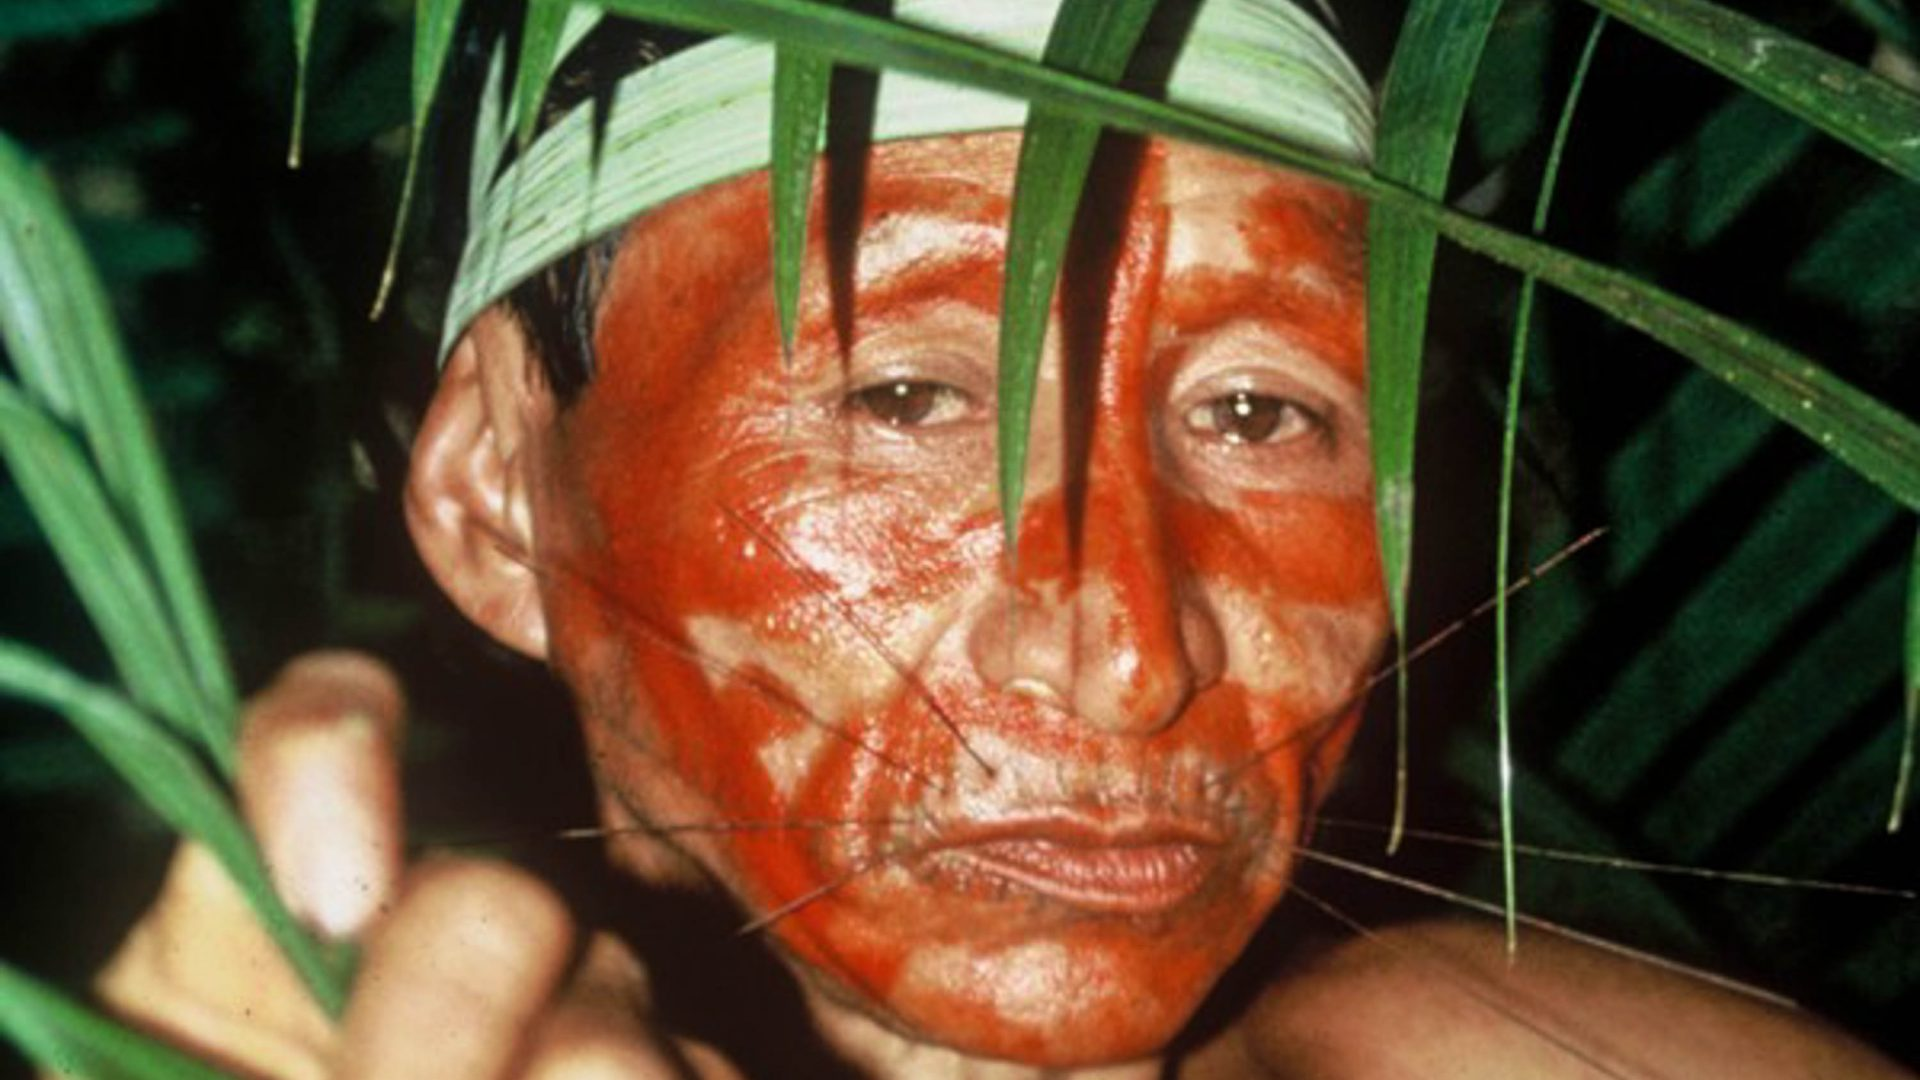 Pablito who Benedict stayed with in the Peruvian Amazon 25 years ago.